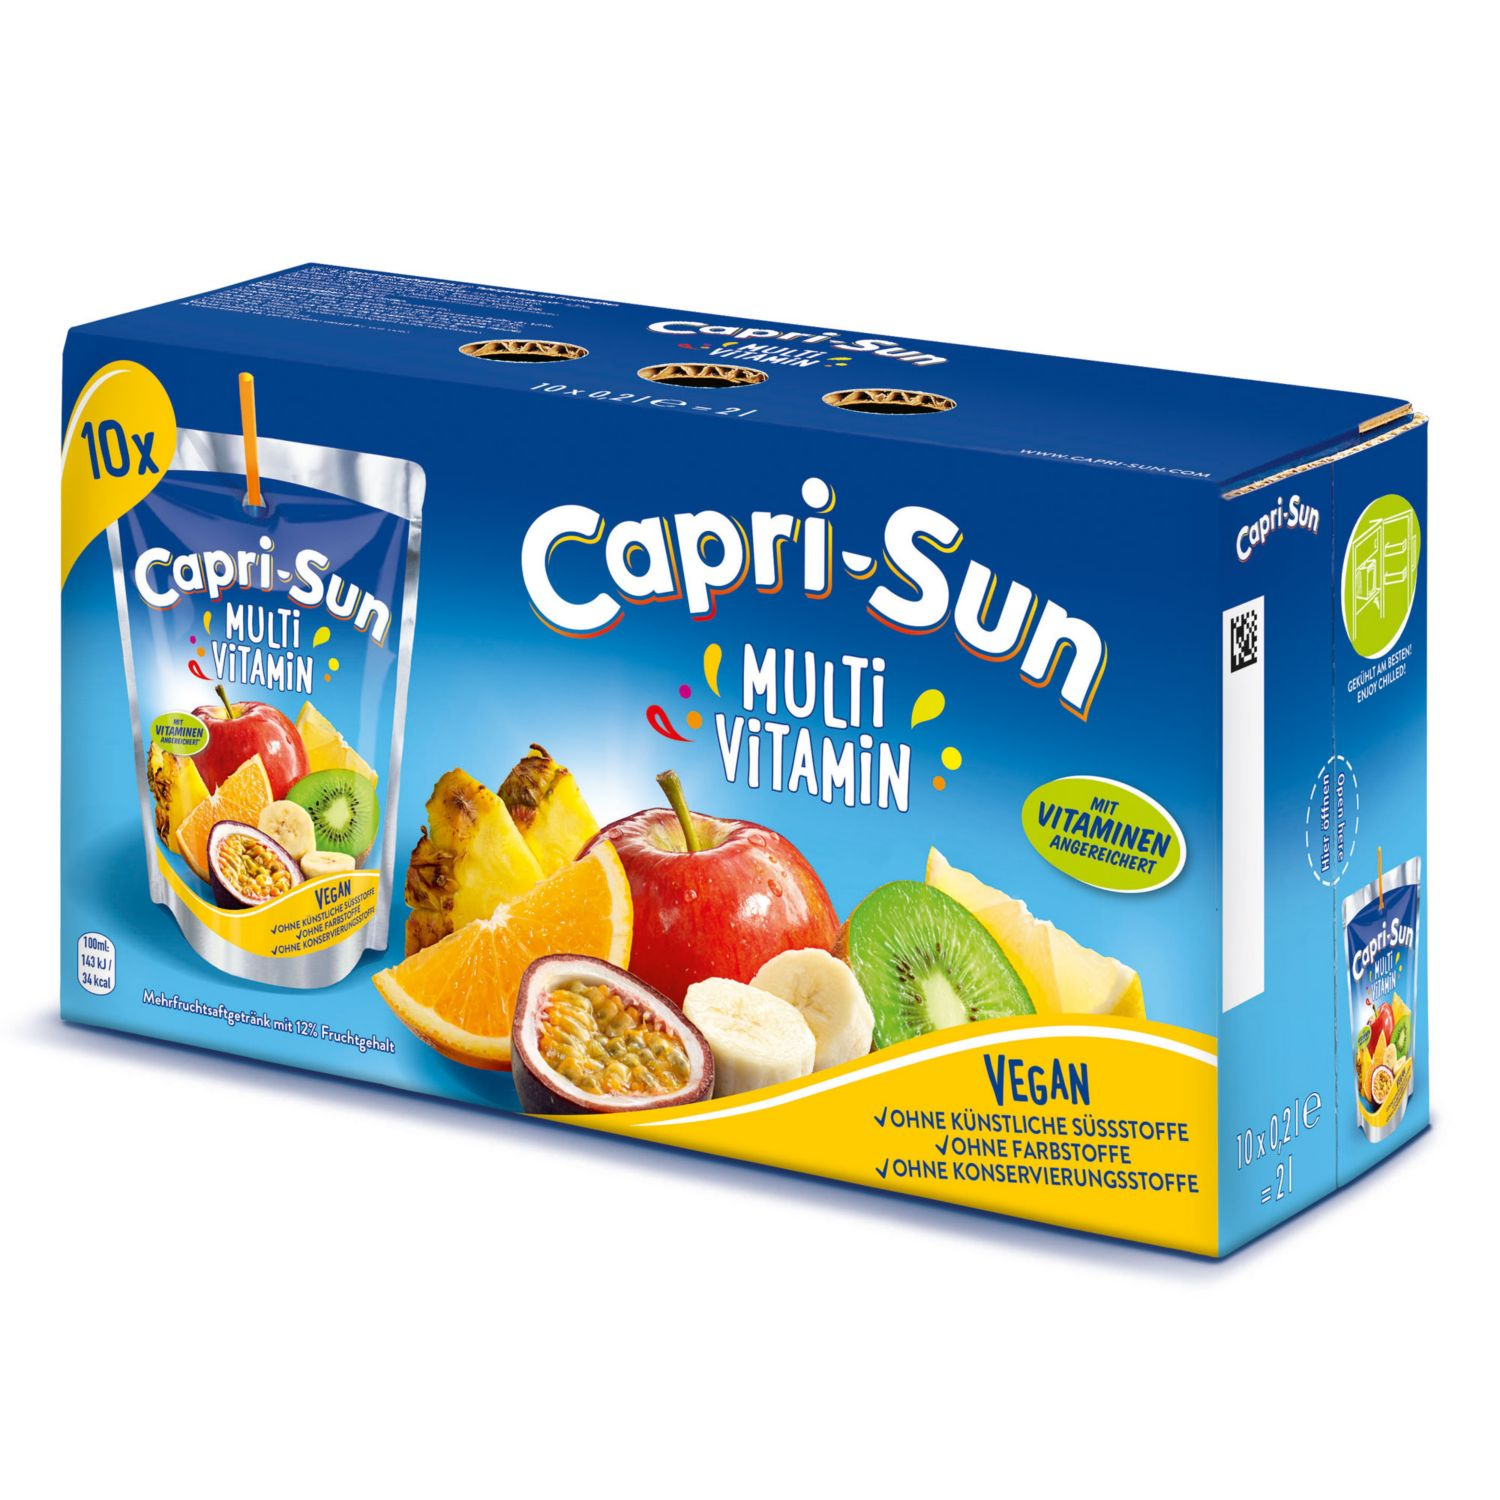 Capri-Sun, Multivitamin